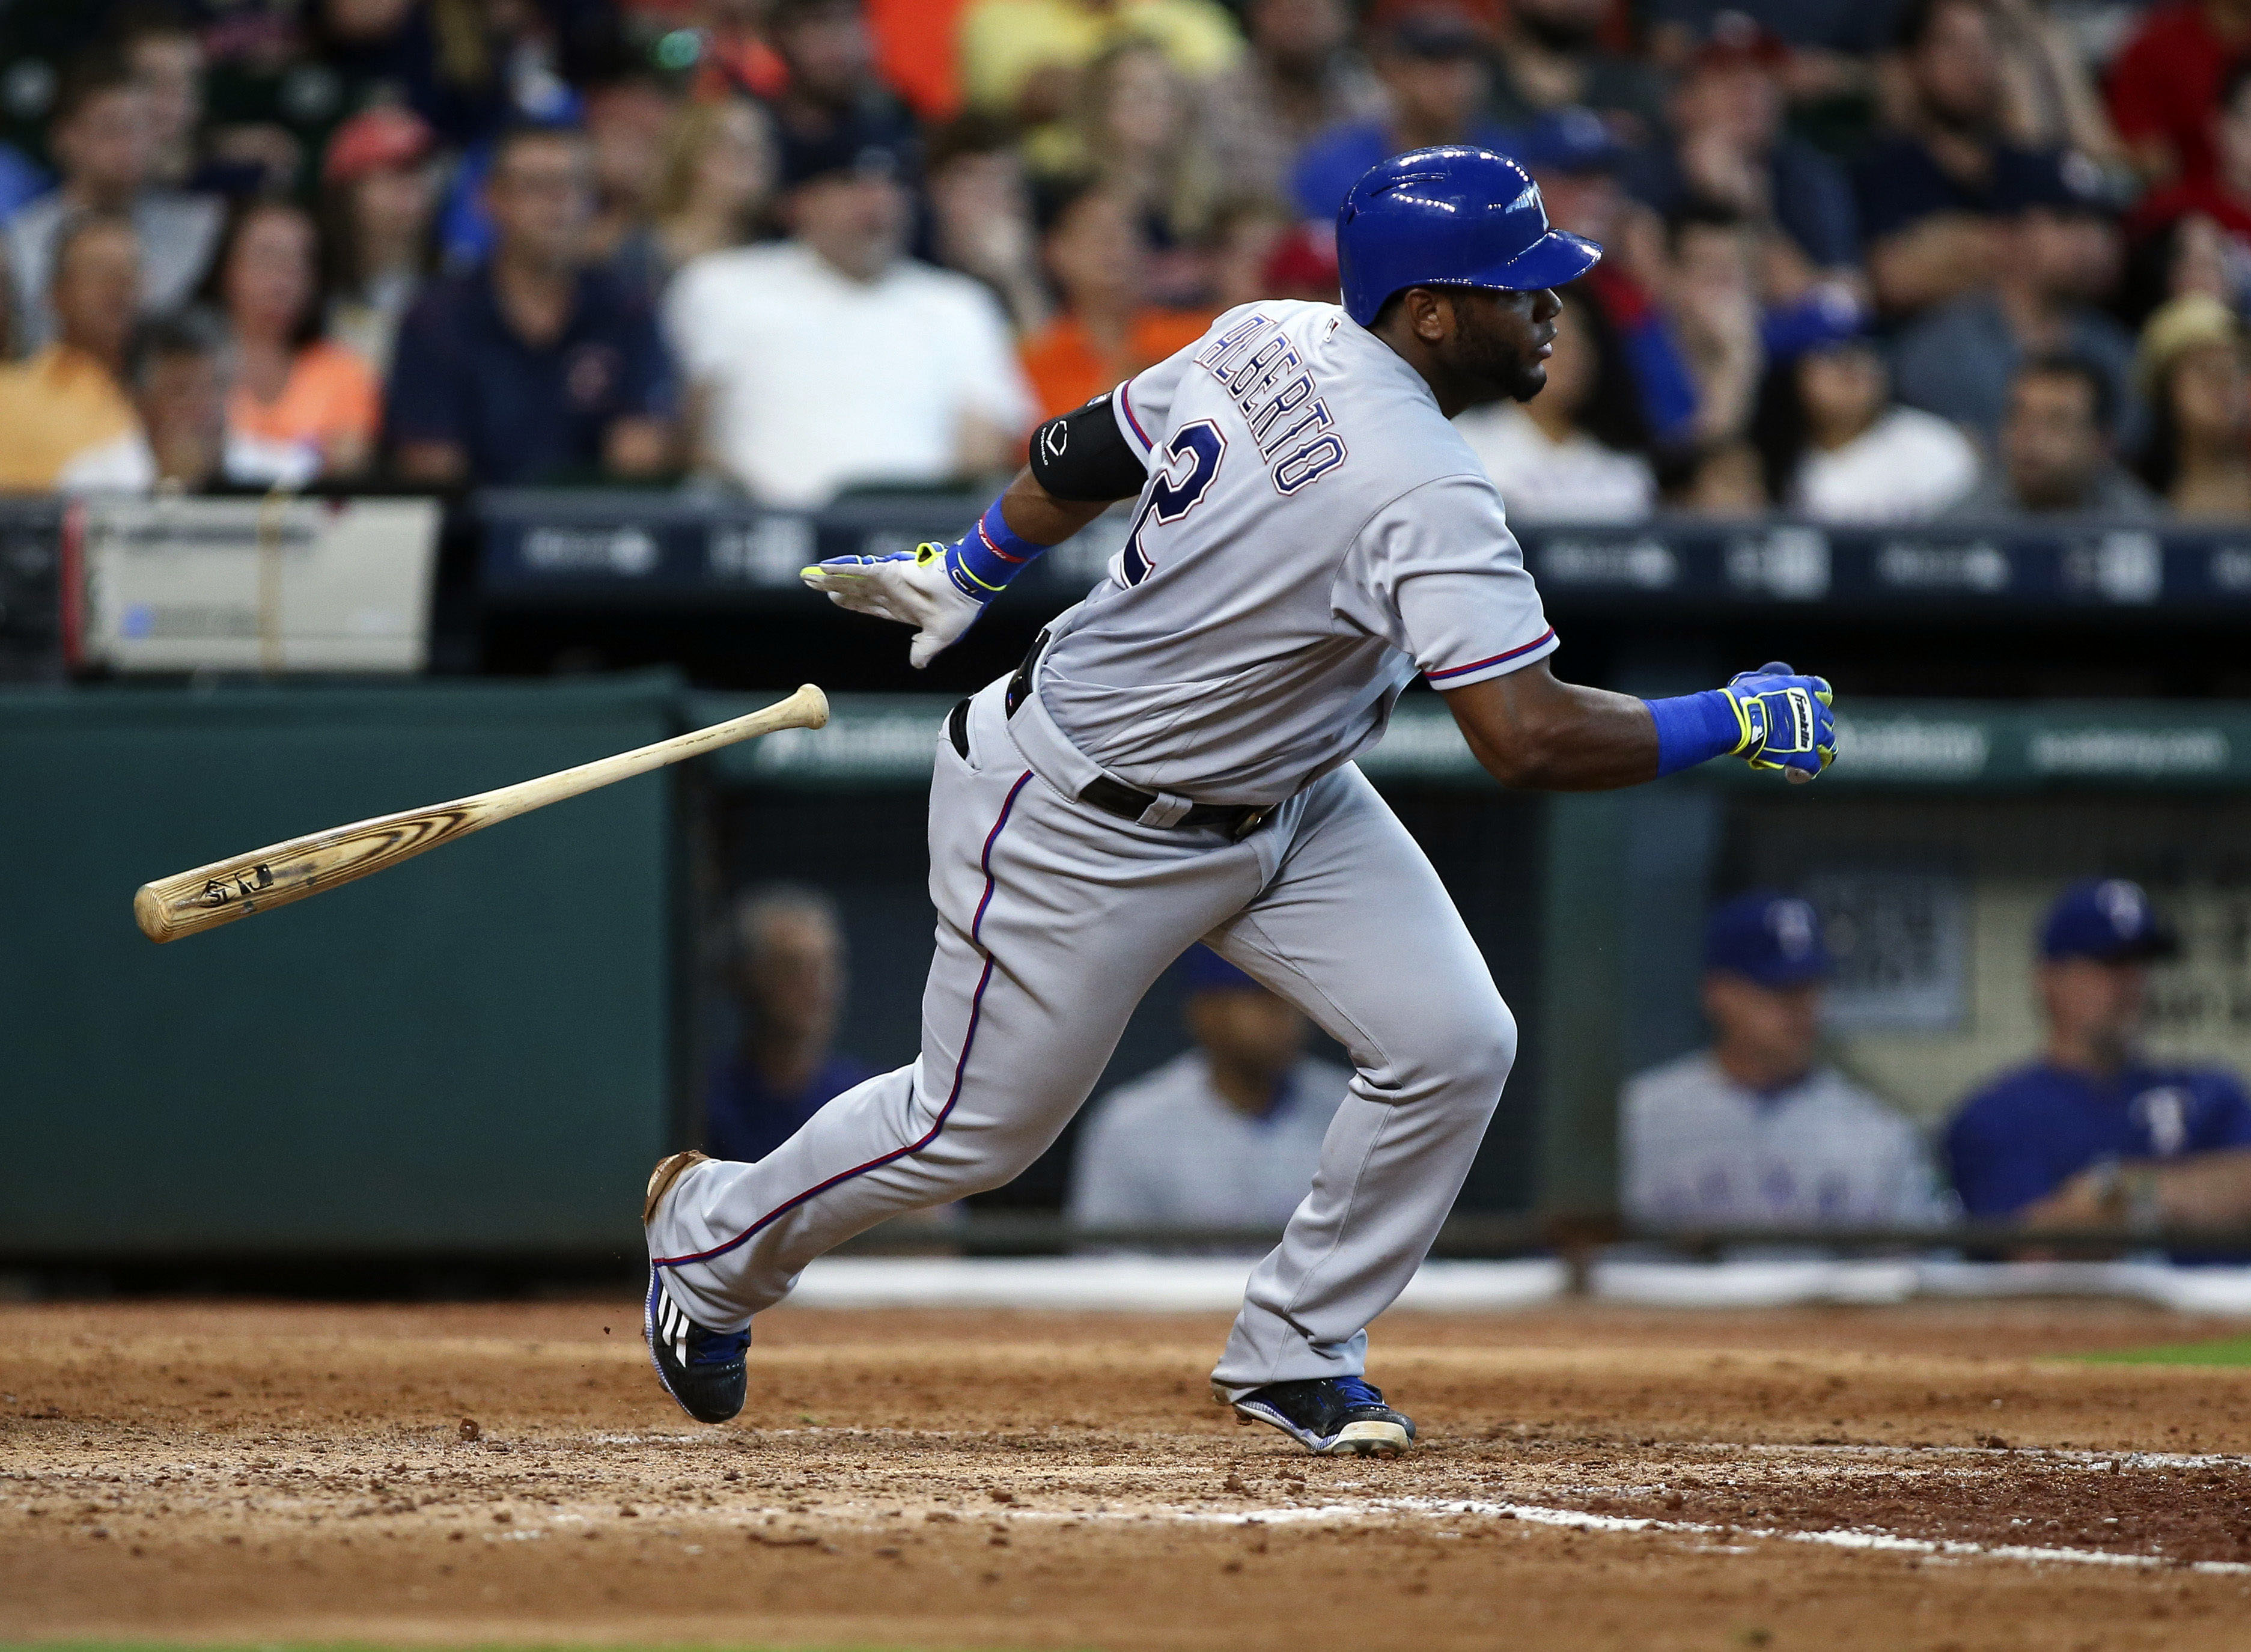 May 22, 2016; Houston, TX, USA; Texas Rangers second baseman Hanser Alberto (2) drives in a run with a single during the sixth inning against the Houston Astros at Minute Maid Park. Mandatory Credit: Troy Taormina-USA TODAY Sports